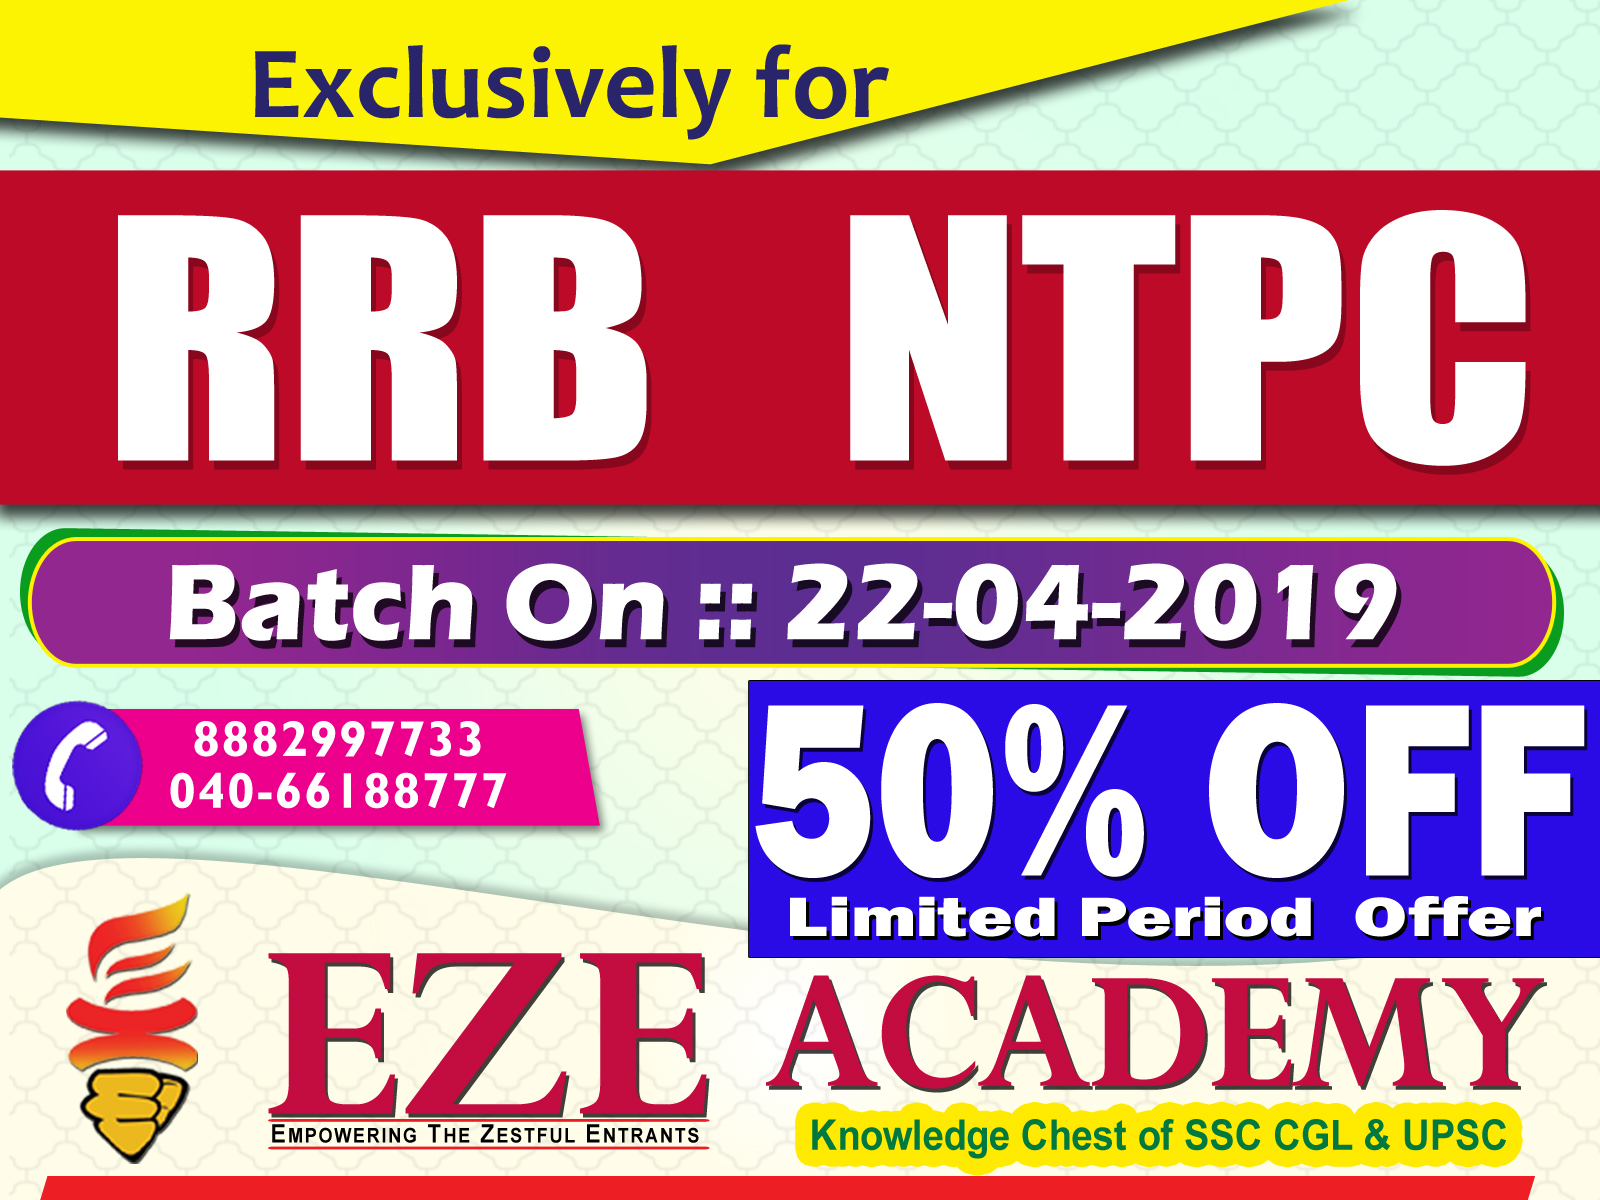 rrb ntpc coaching centers in hyderabad ashok nagar